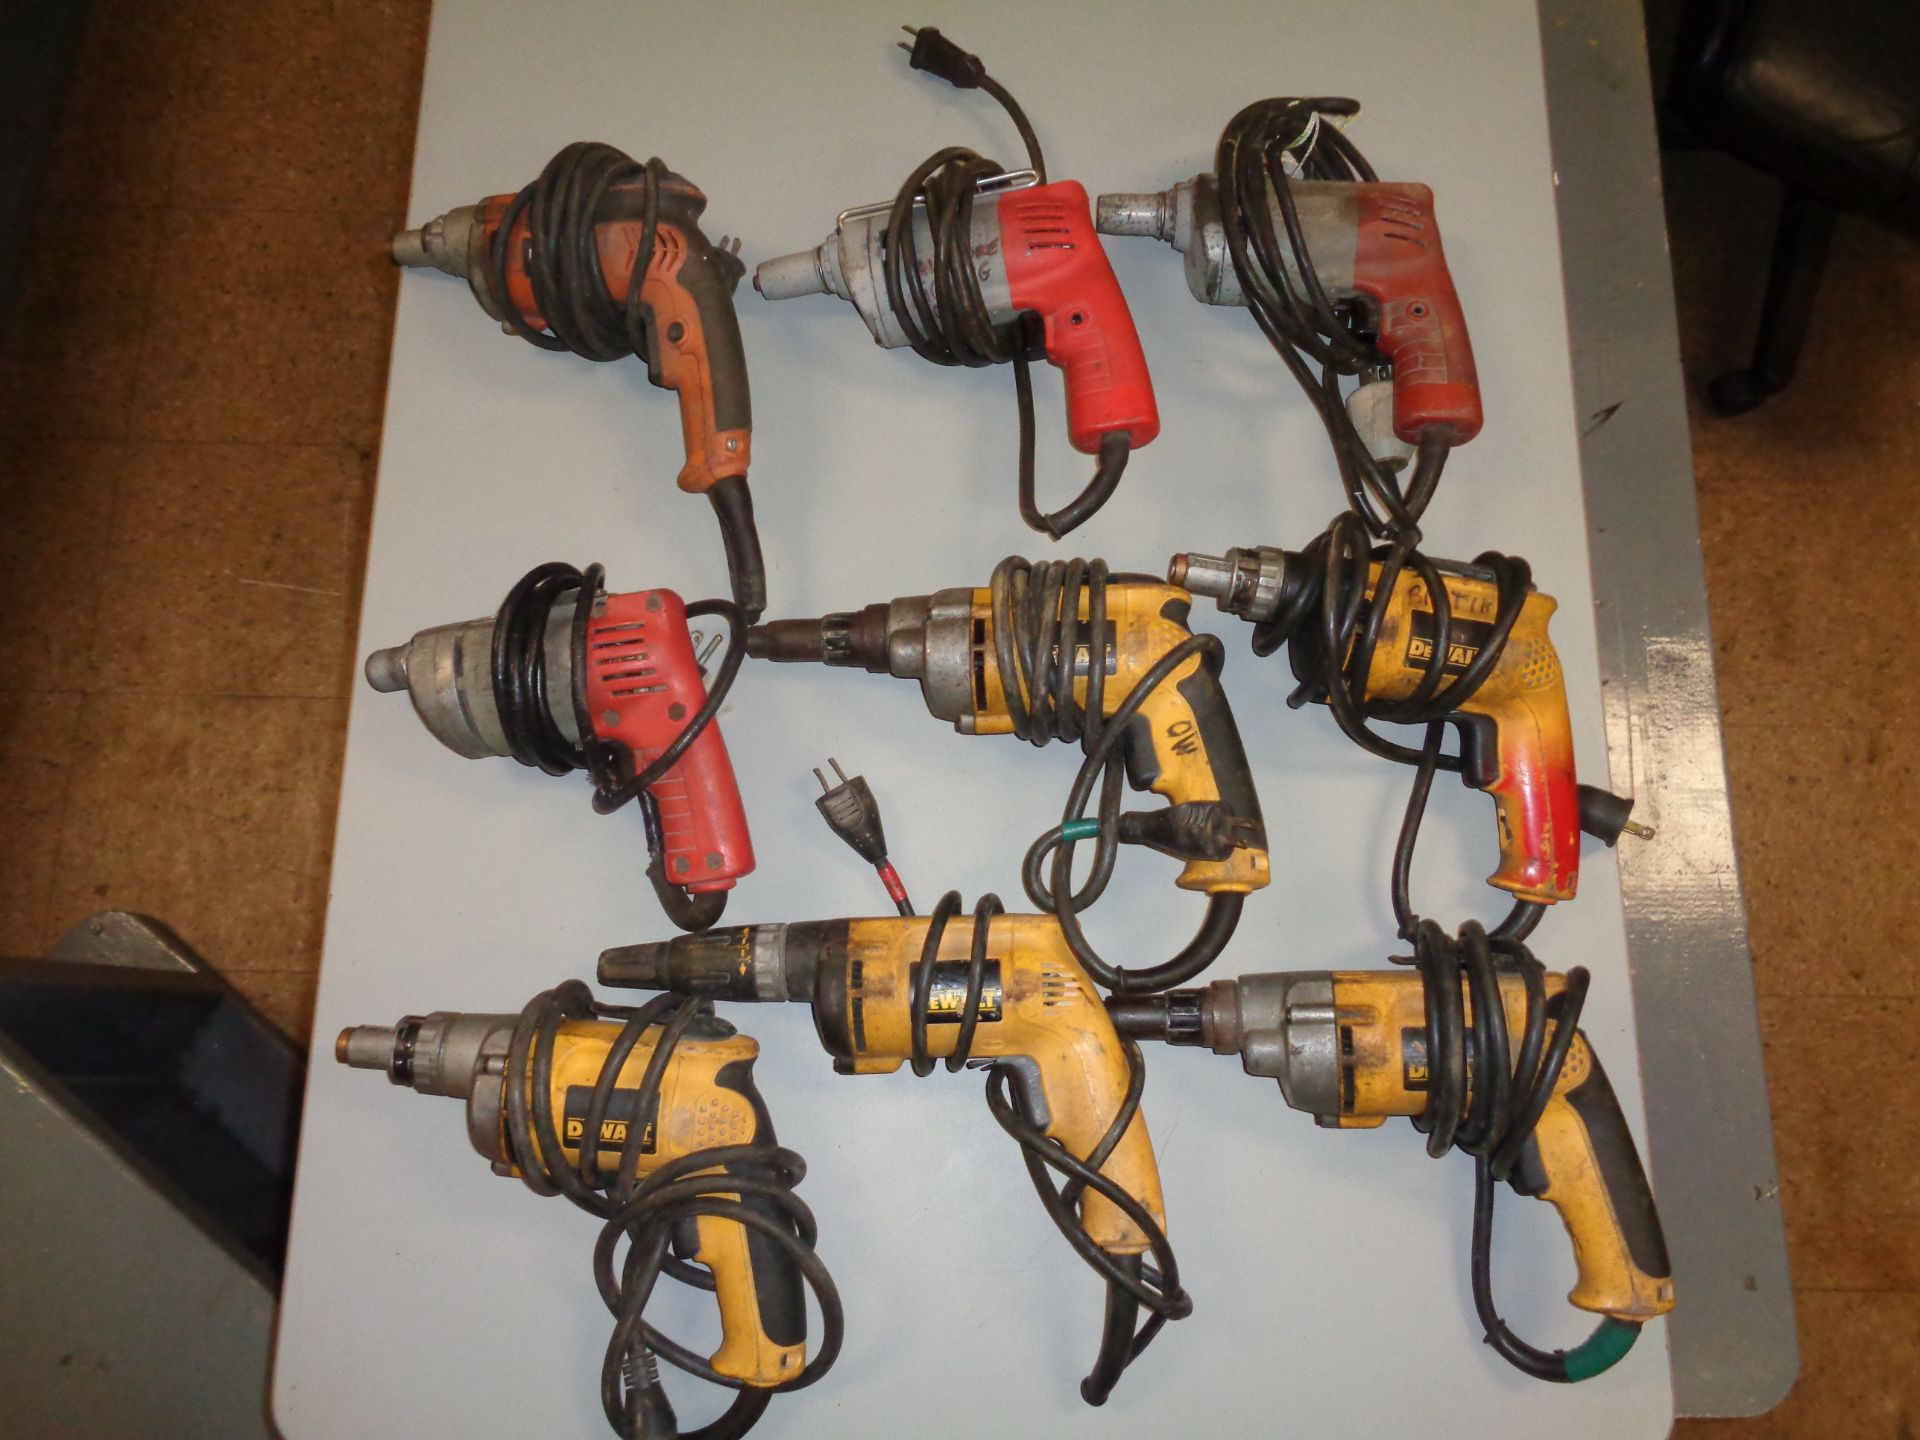 Lot 9B - Lot of 9 Drywall Screw Shooters